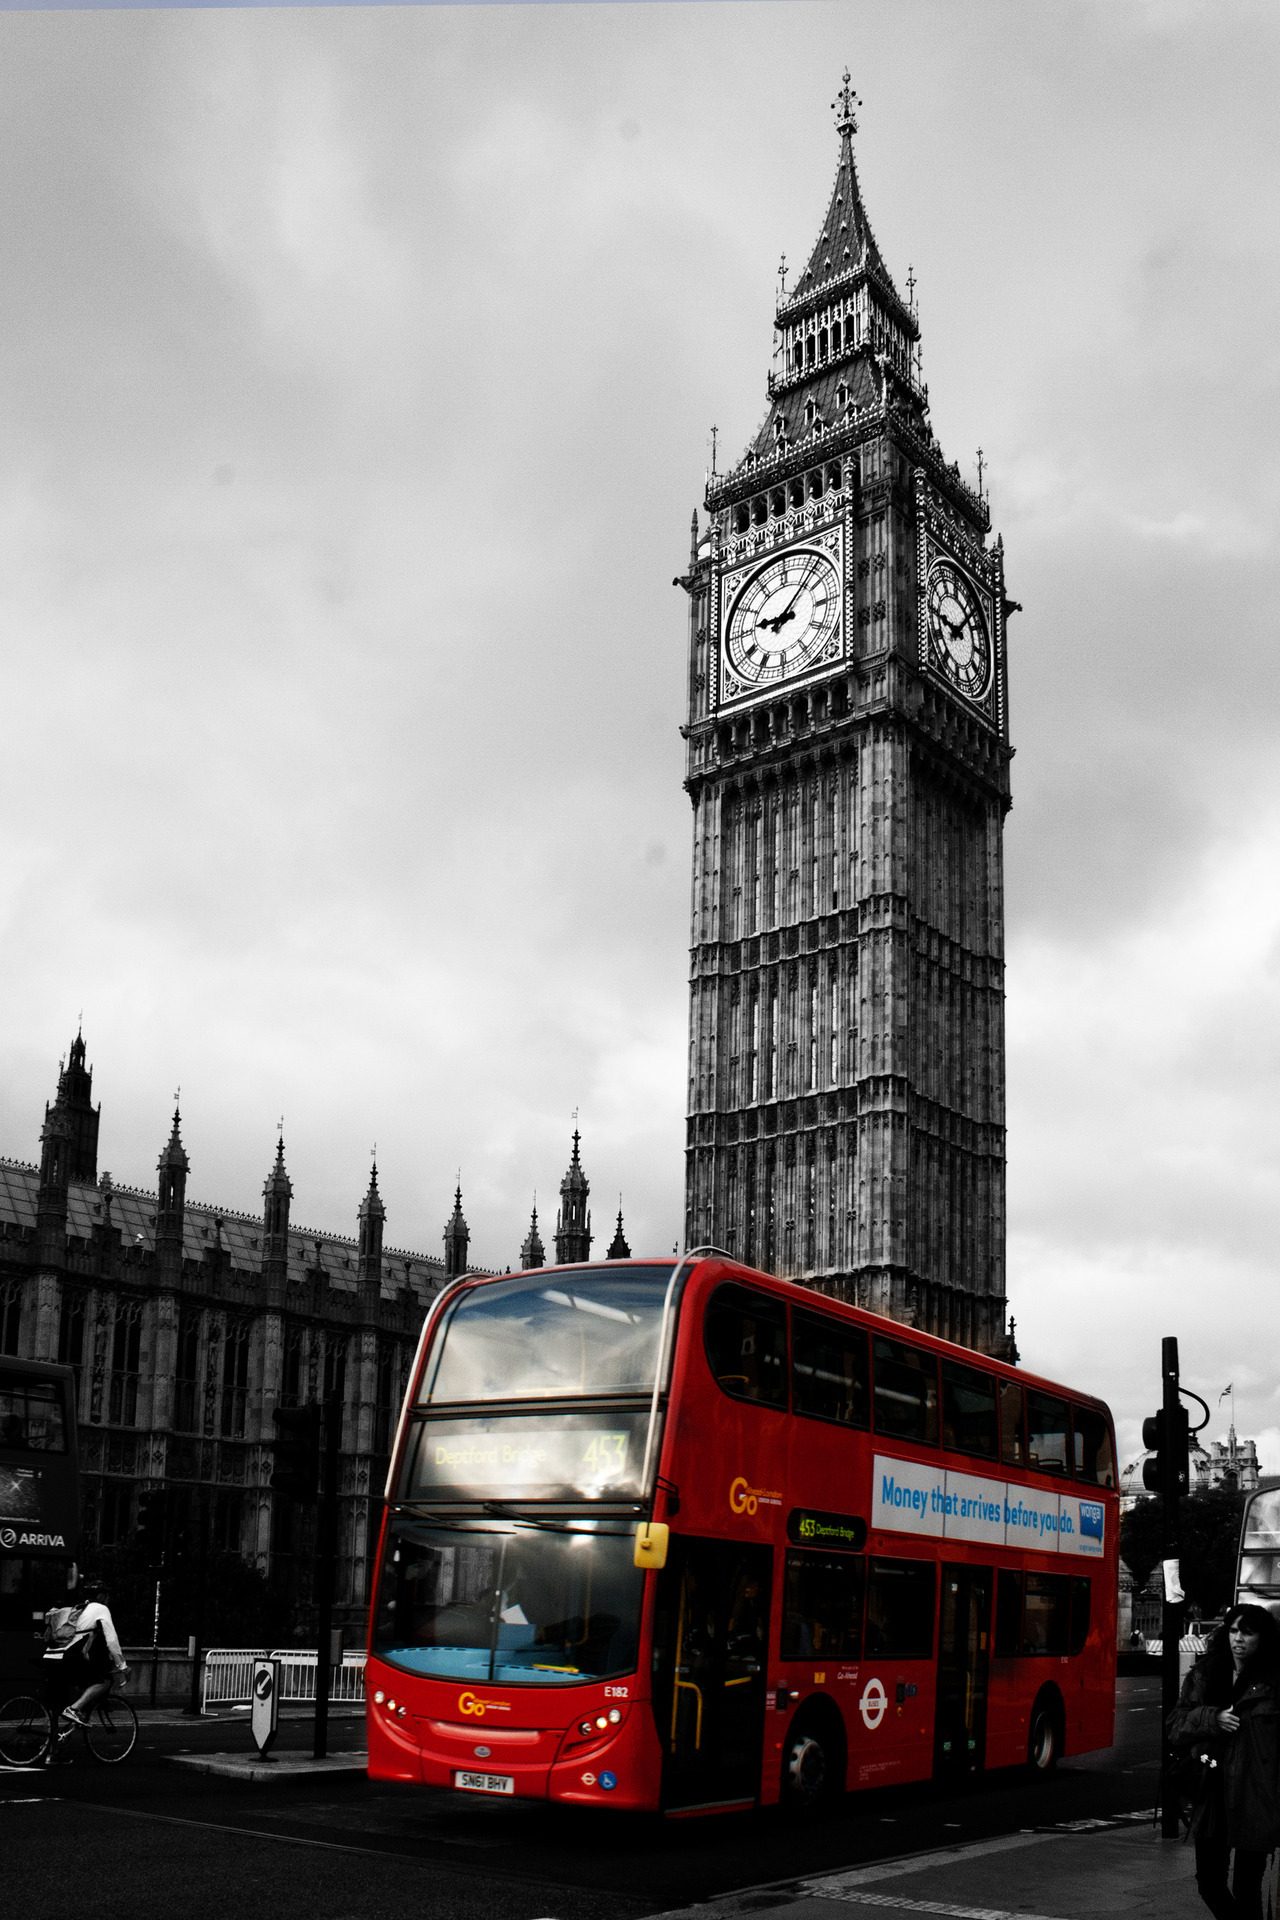 Big Ben and the famous red bus in London, UK. It was my first time in London, so I had to snap a few typical tourist photos ;)